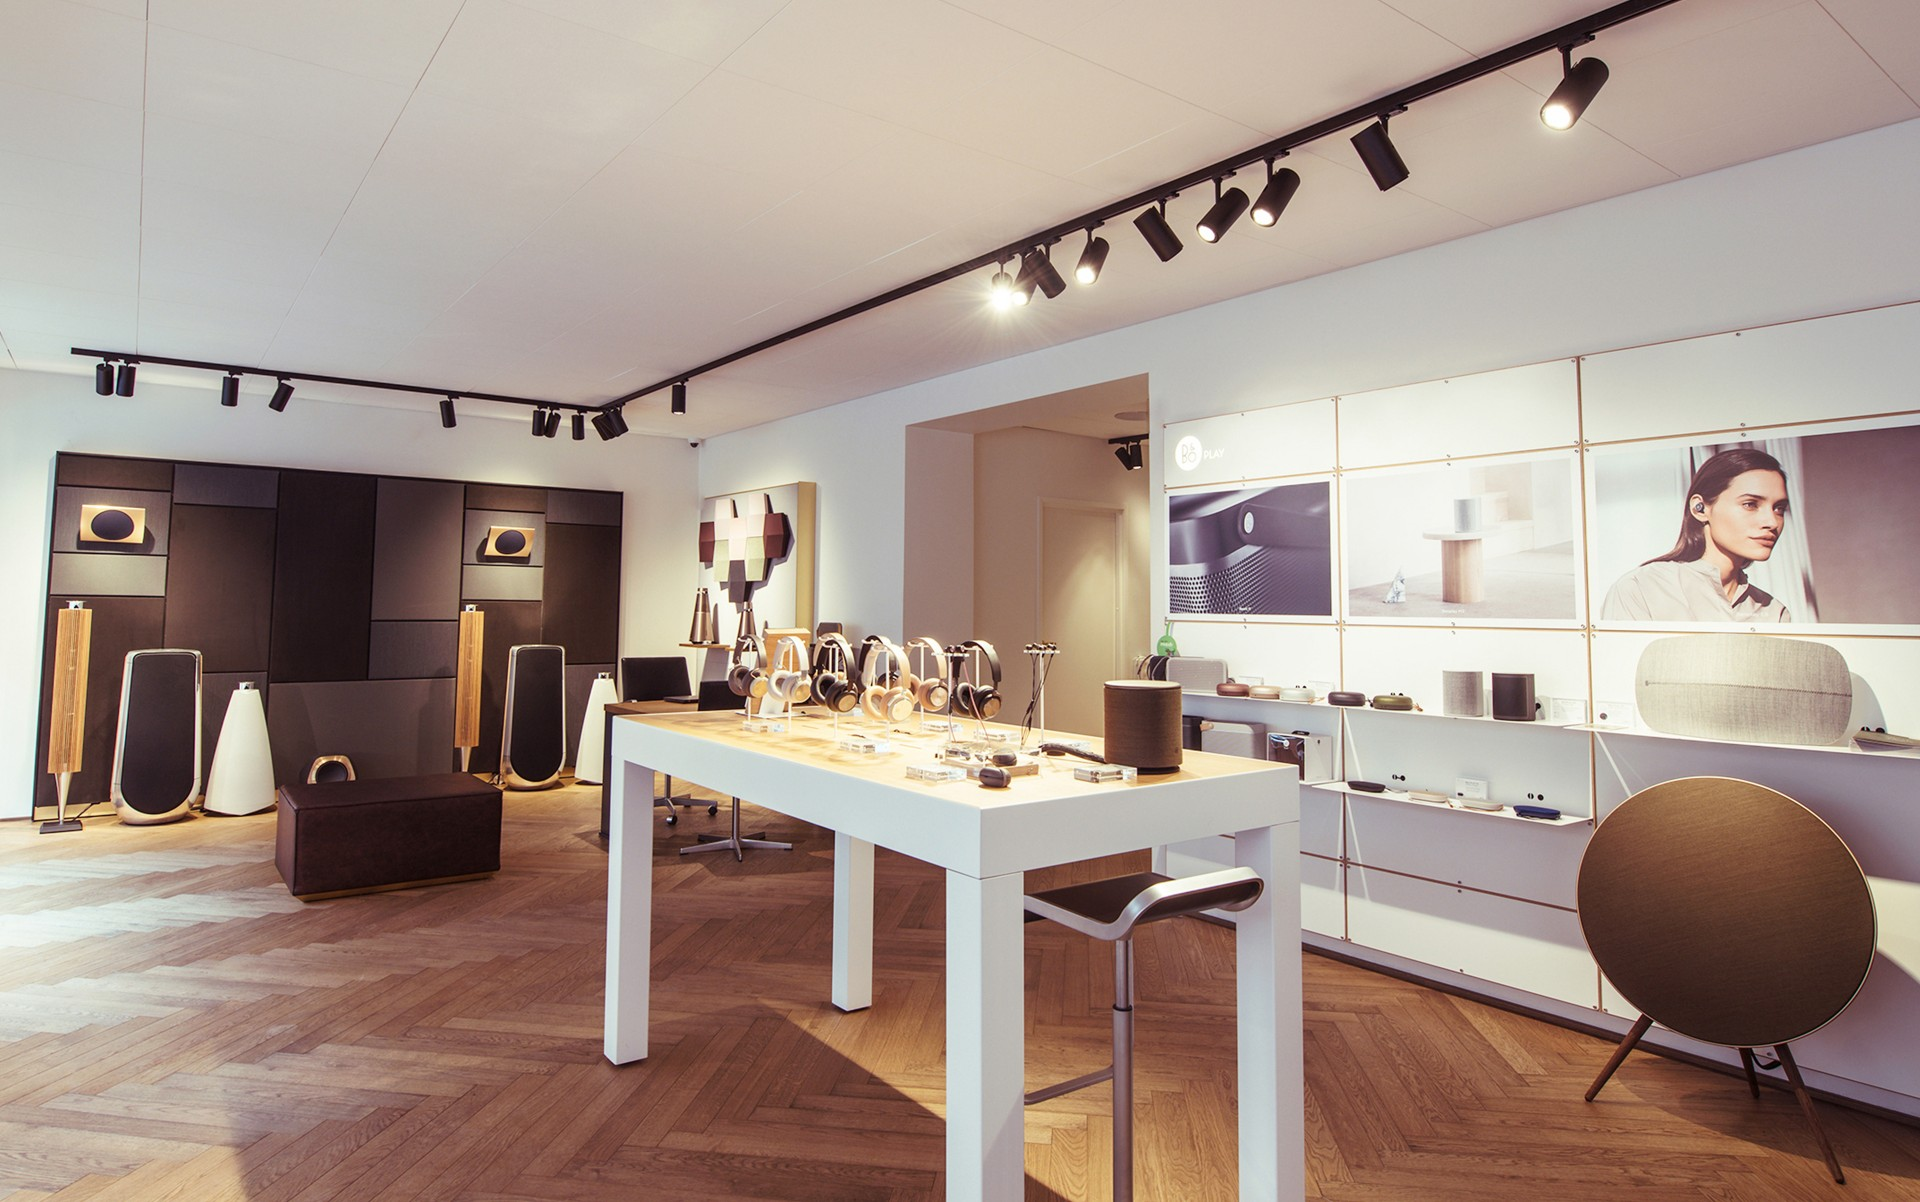 For their new brick and mortar location on Fredrikinkatu, lighting provider DECOlight used the versatile and elegant M3 Spot to show off the perfection of the electronics on display. – Joonas Puhakka (Northern Images)